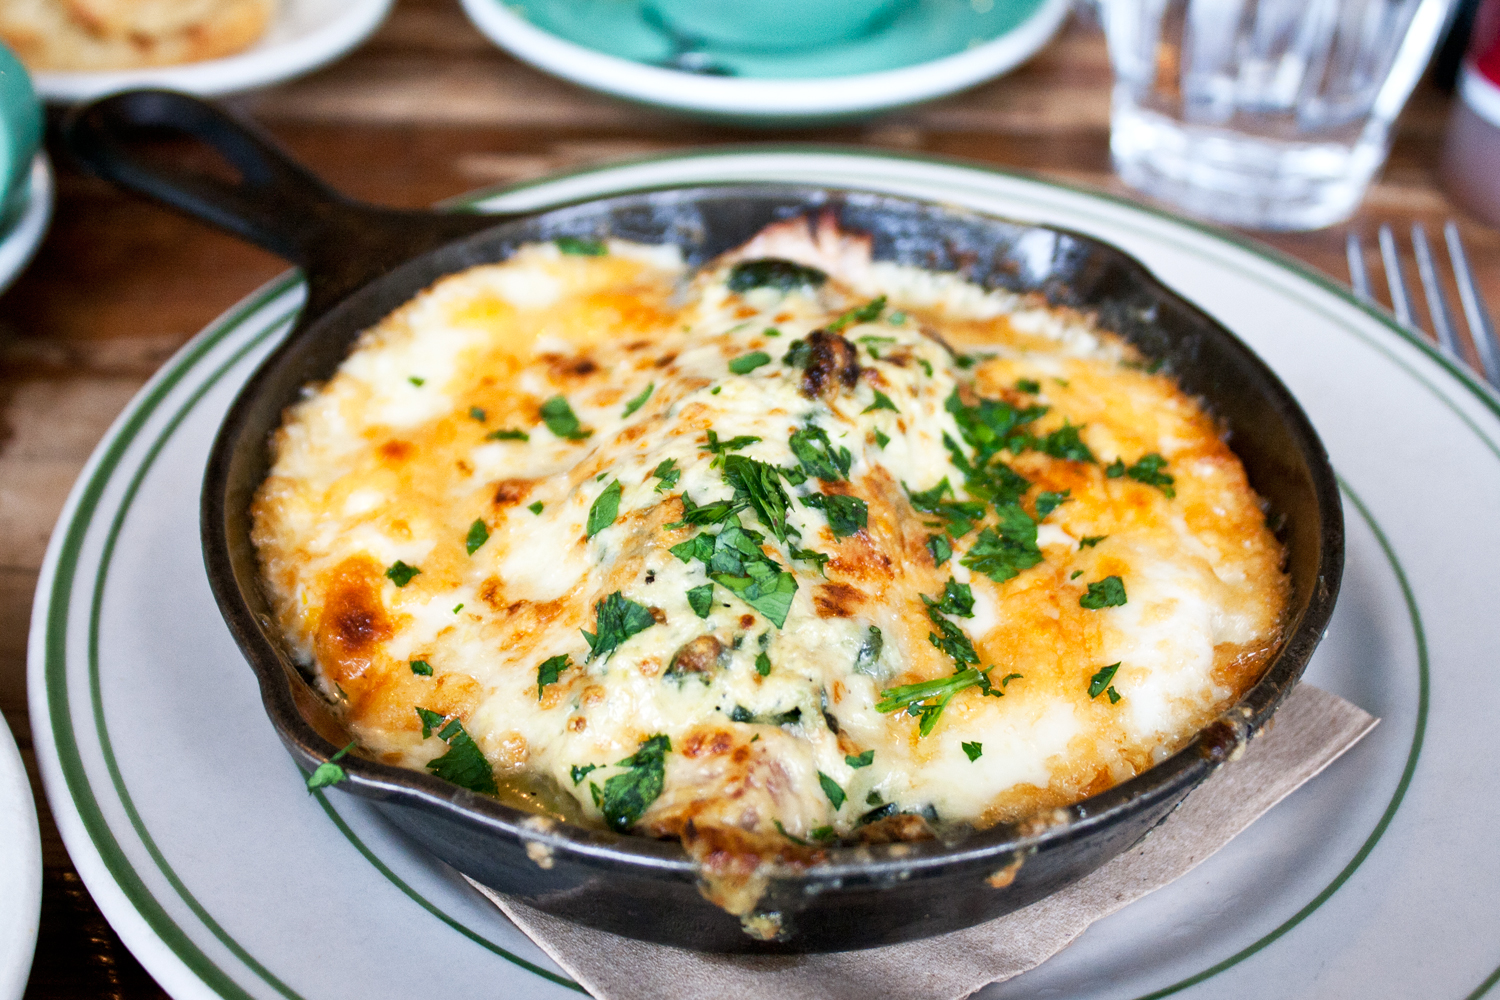 07-oddfellows-seattle-food-foodie-brunch-skillet-bakedeggs